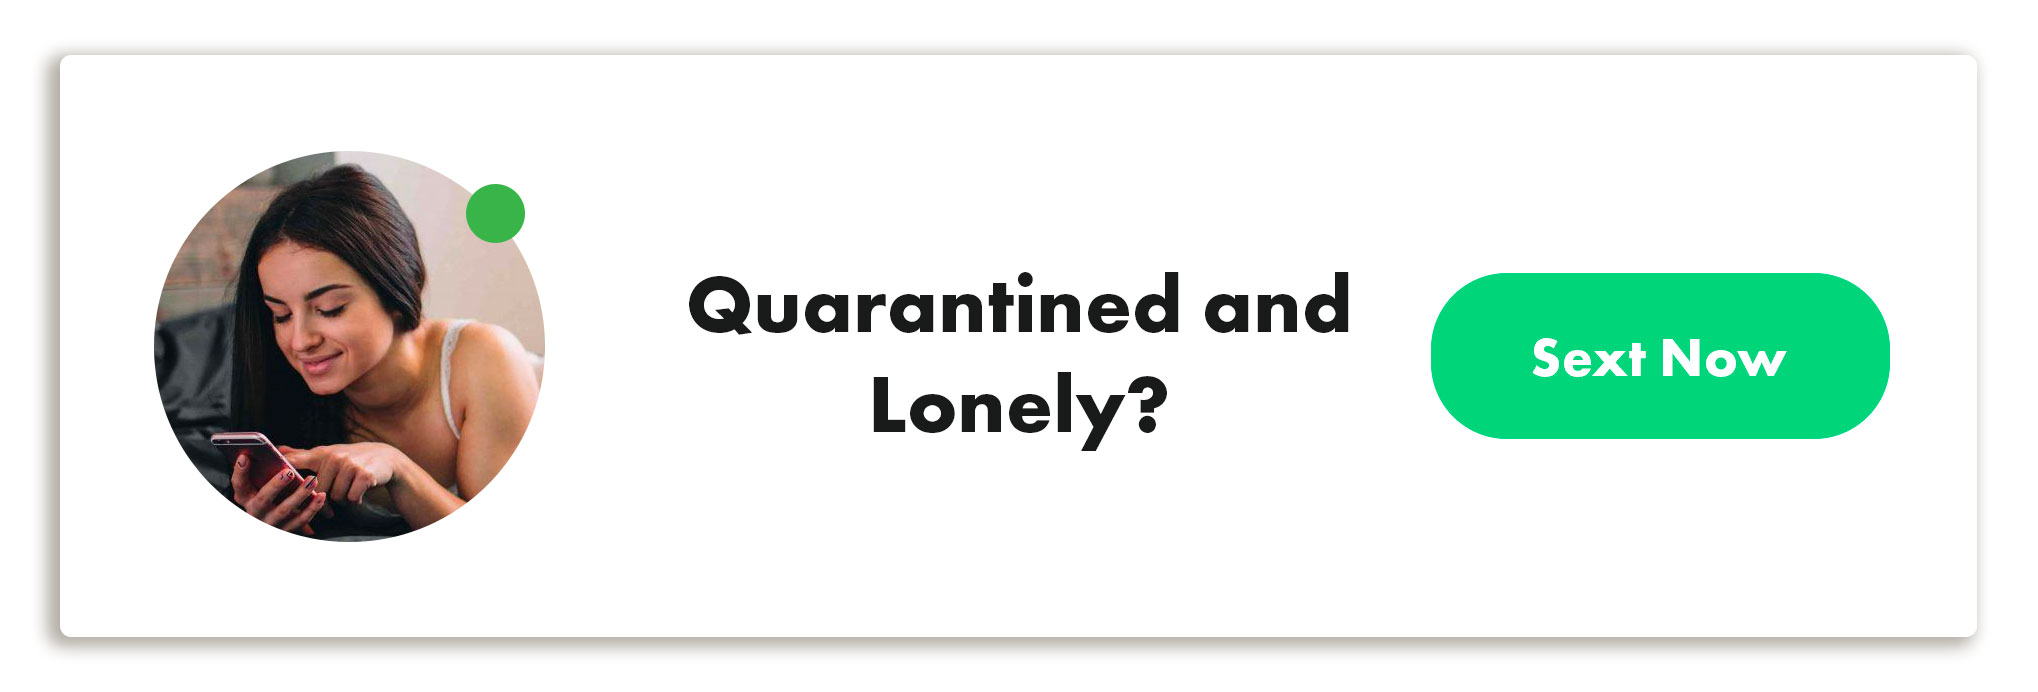 Quarantined and lonely?